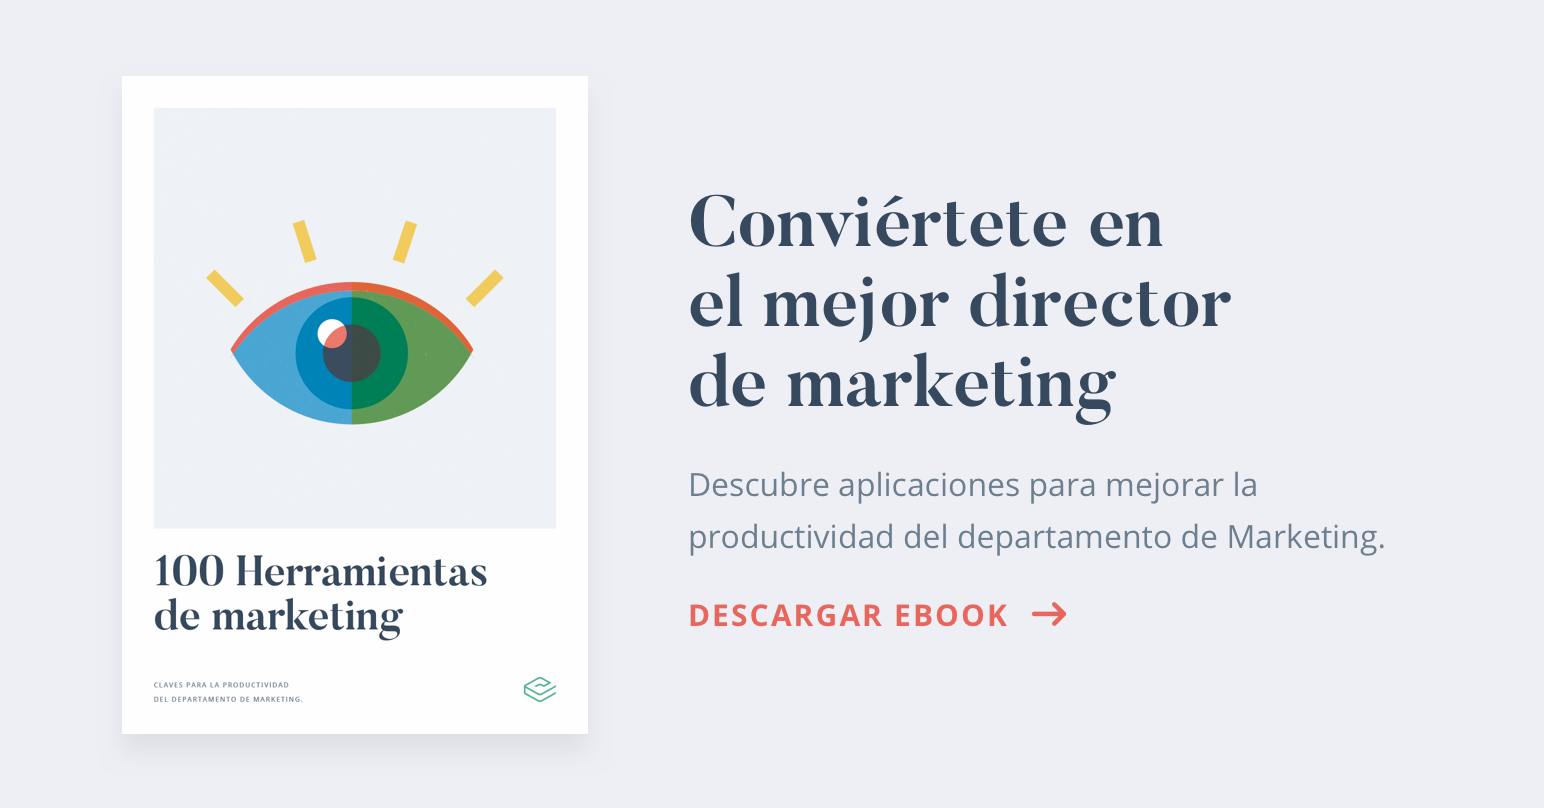 100 Herramientas de marketing